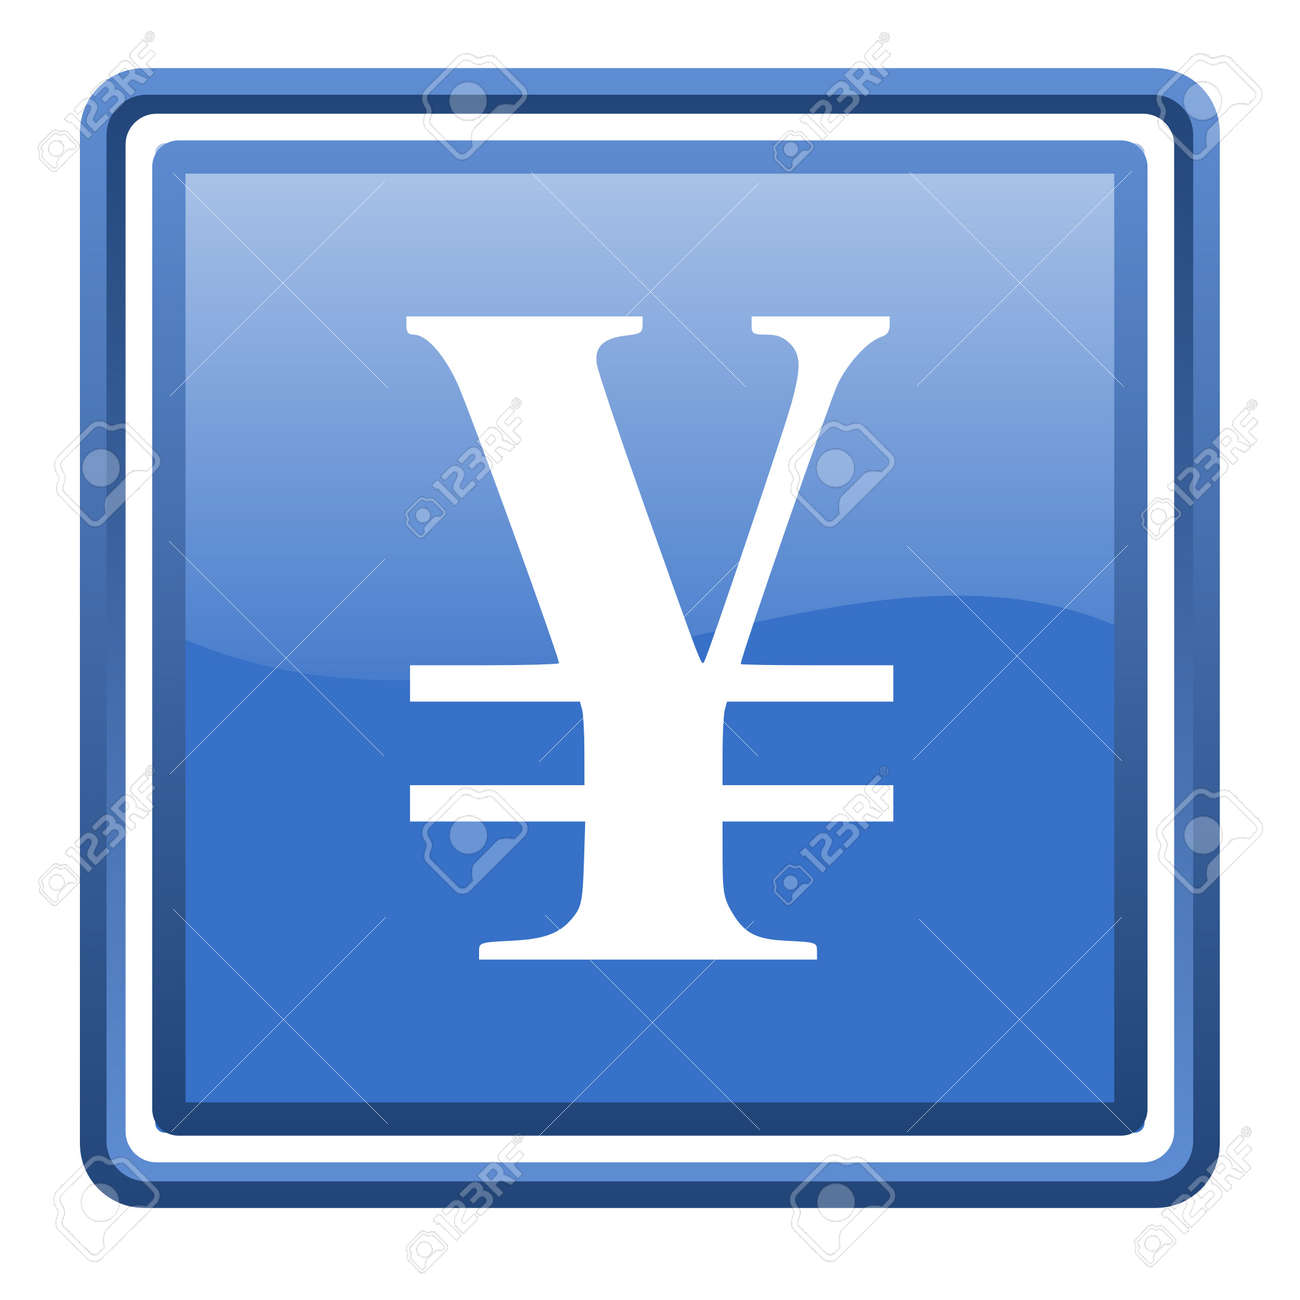 yen blue glossy square web icon isolated Stock Photo - 17093058